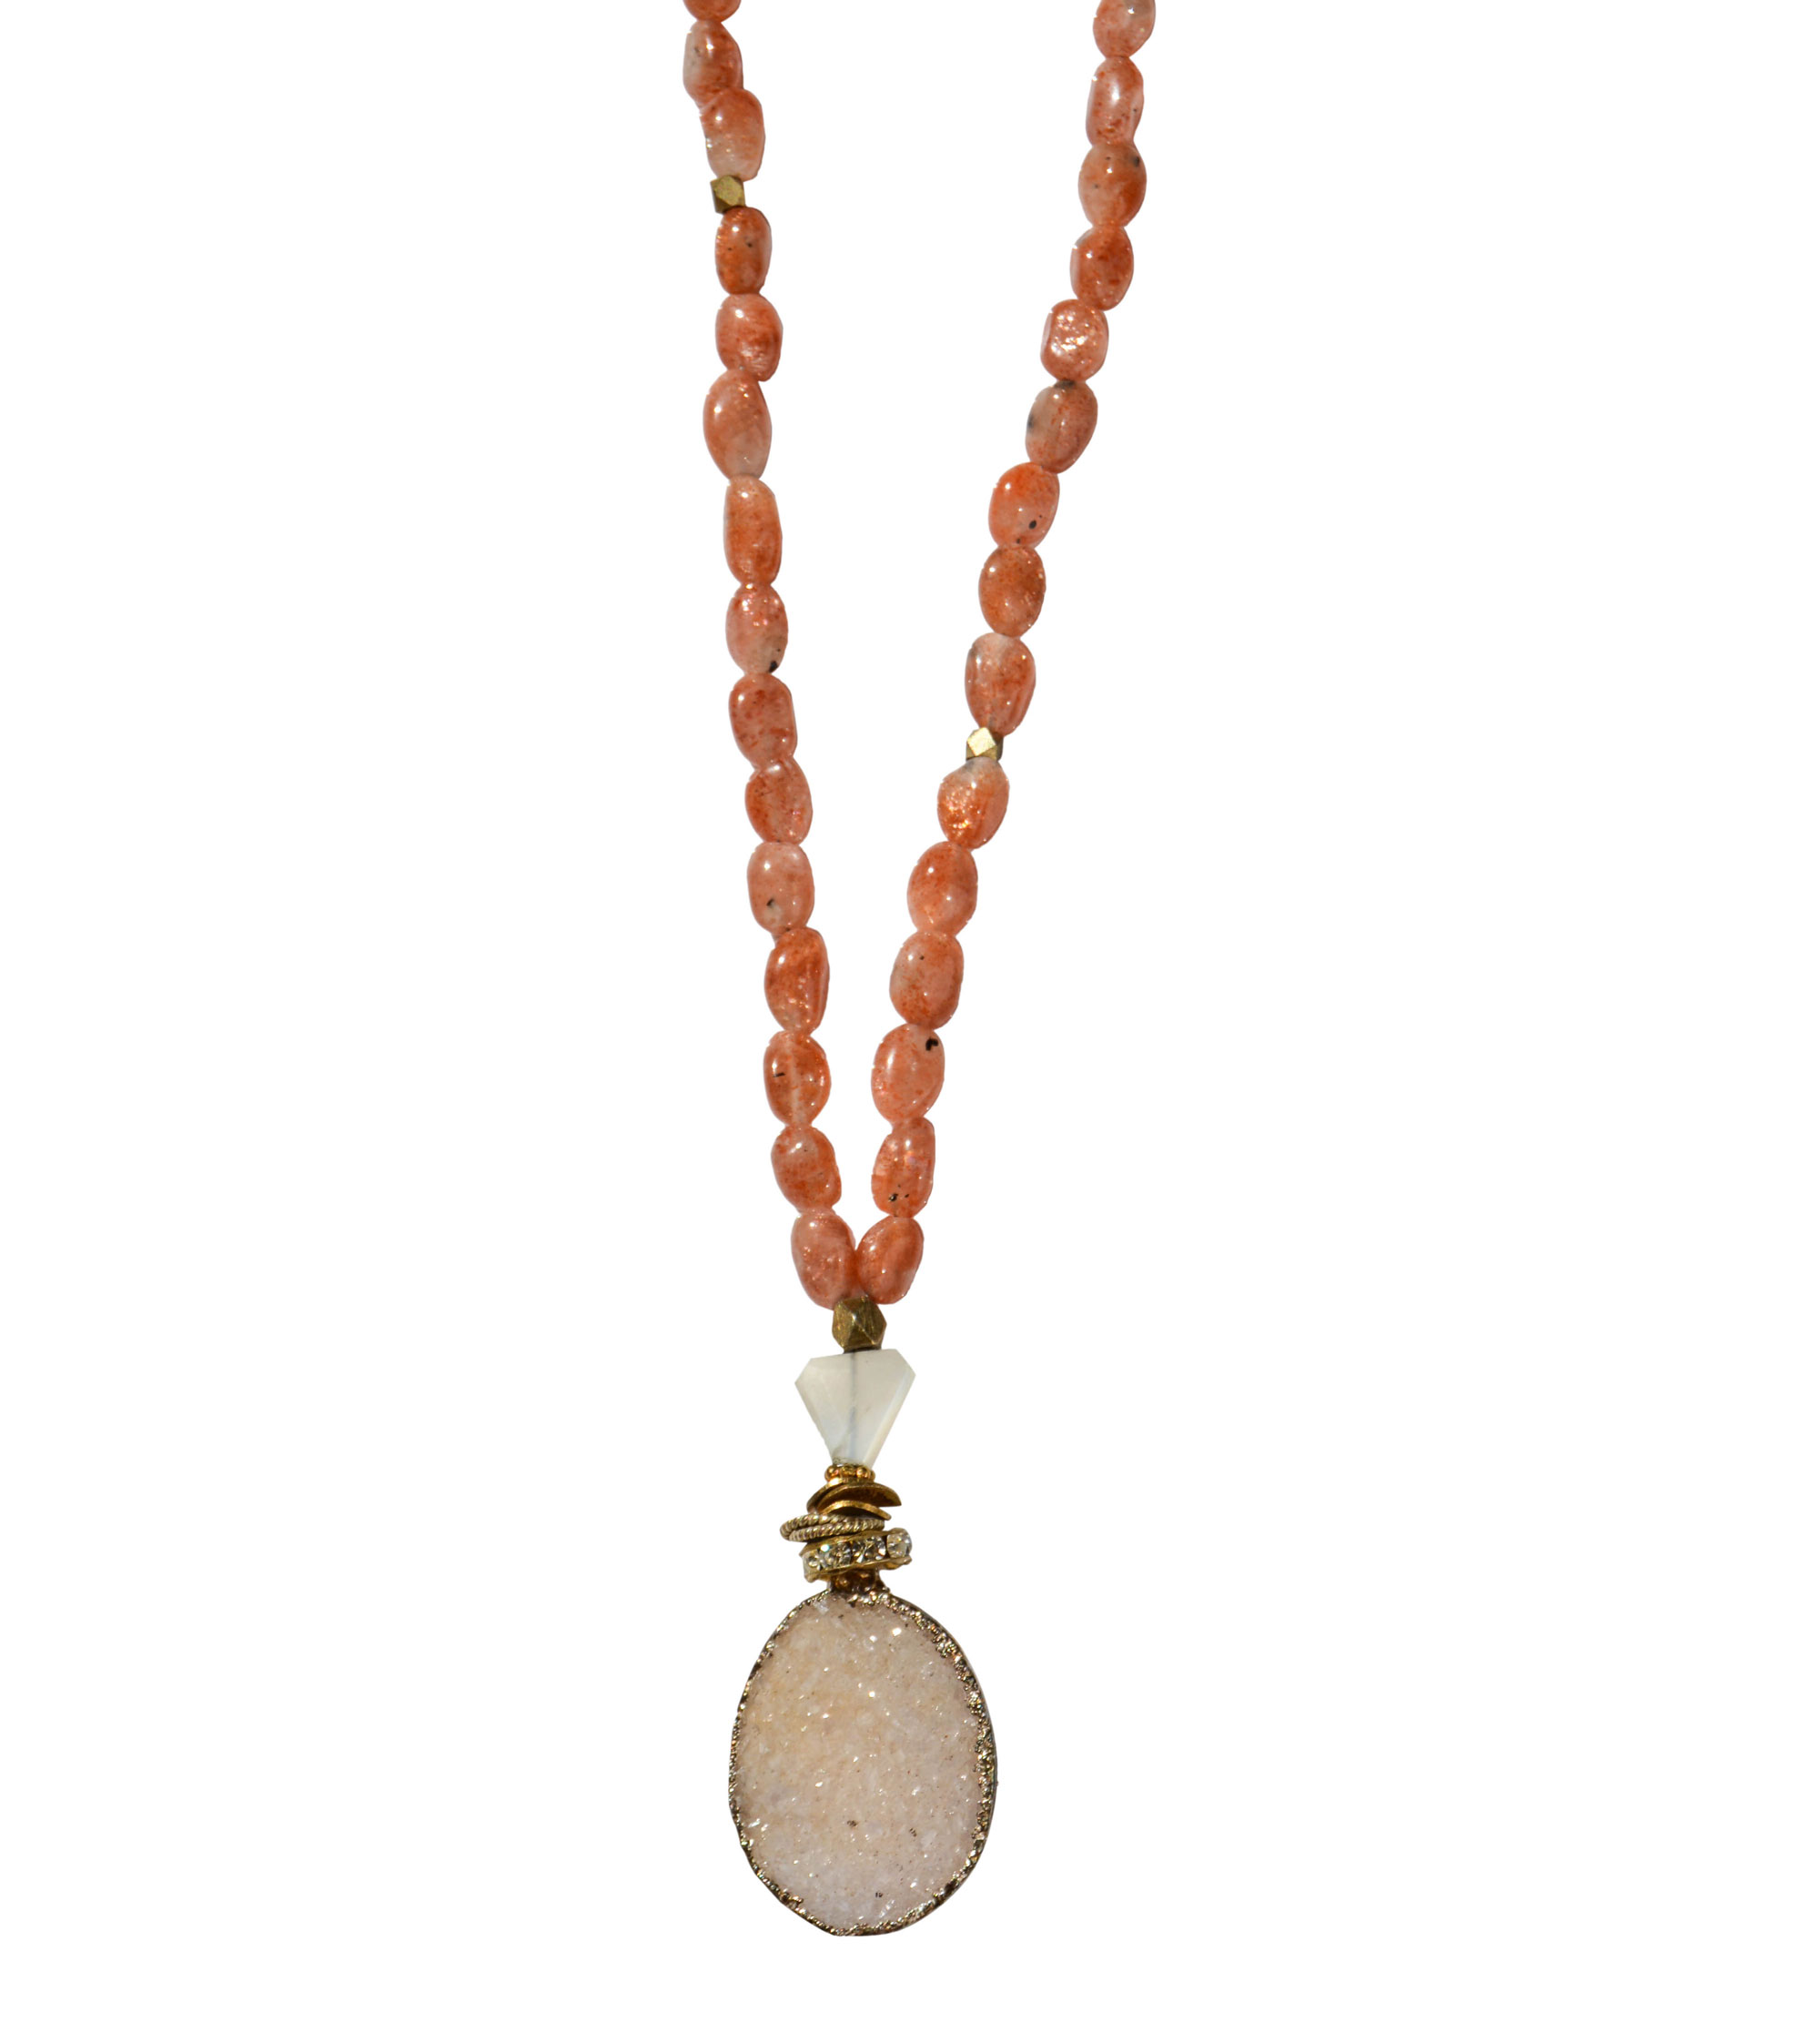 pendant and necklace sunstone p yoni metallic with kyanite il copper coppery orange polymer fullxfull sun goddess